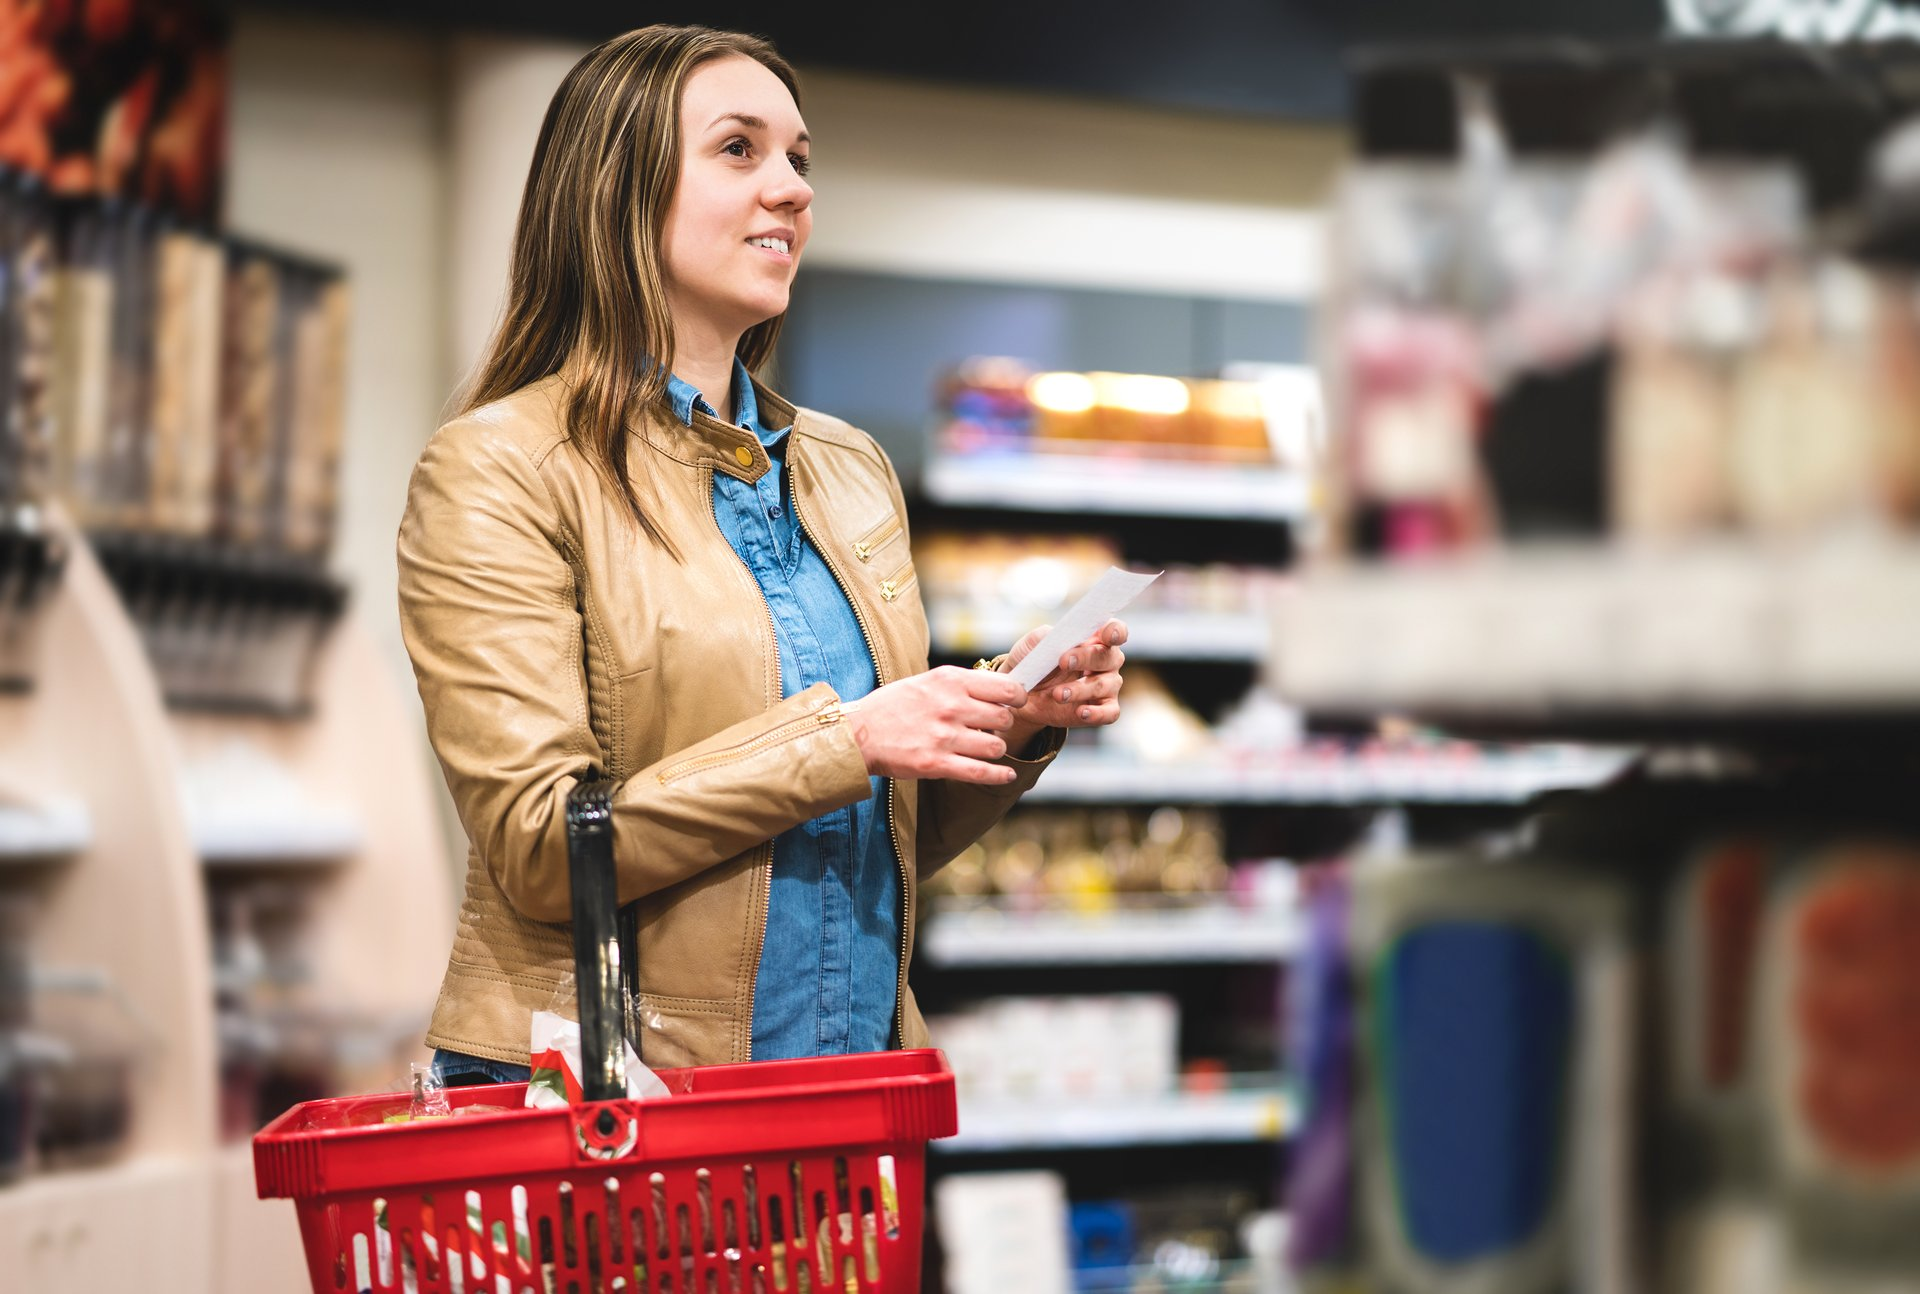 Woman with shopping list in grocery store.